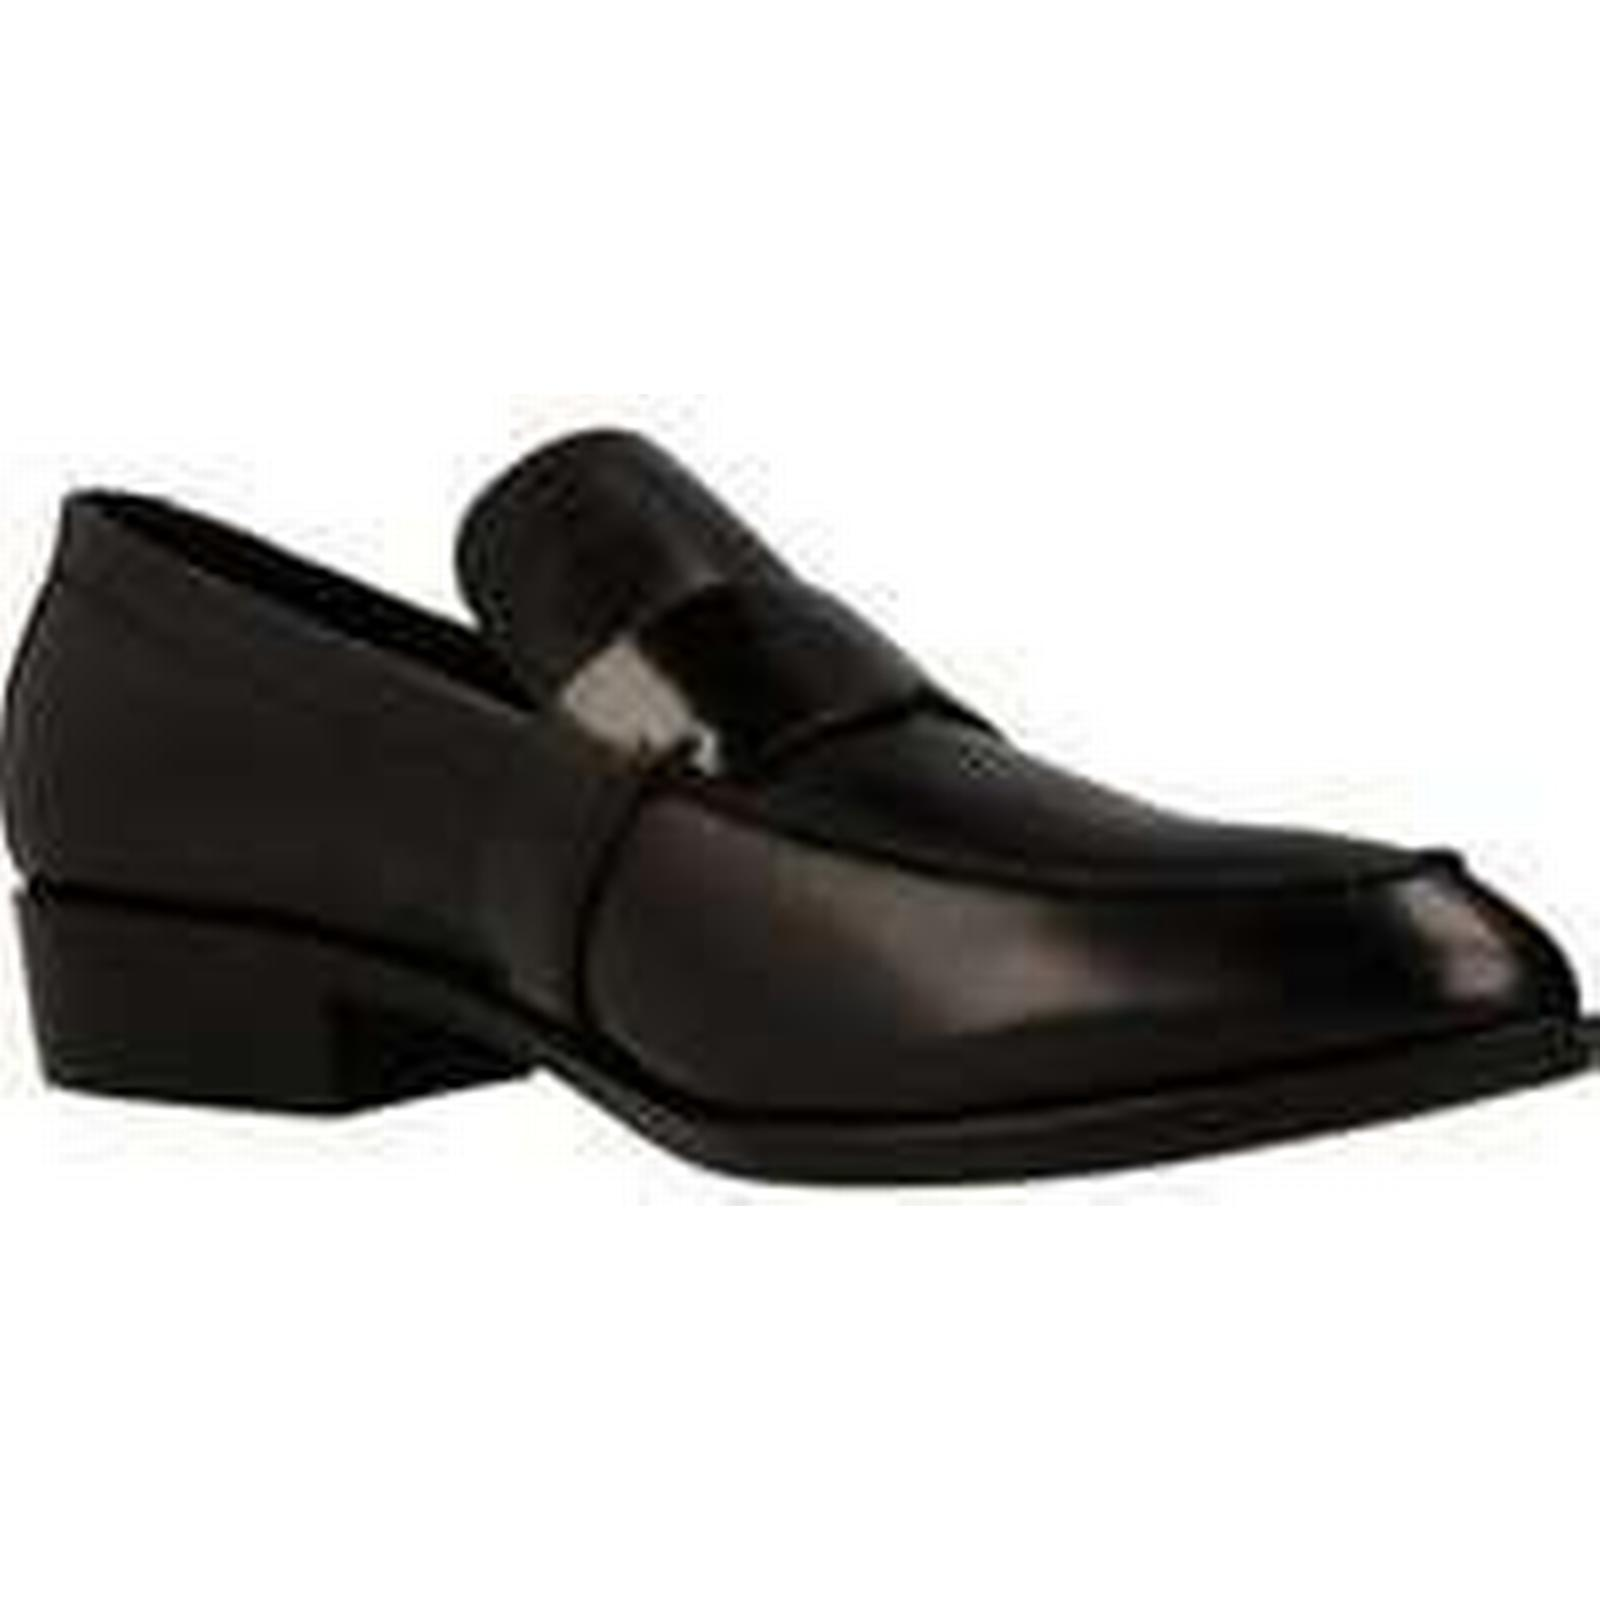 Spartoo.co.uk Geox D LOVER women's Loafers Black / Casual Shoes in Black Loafers 1b4d97